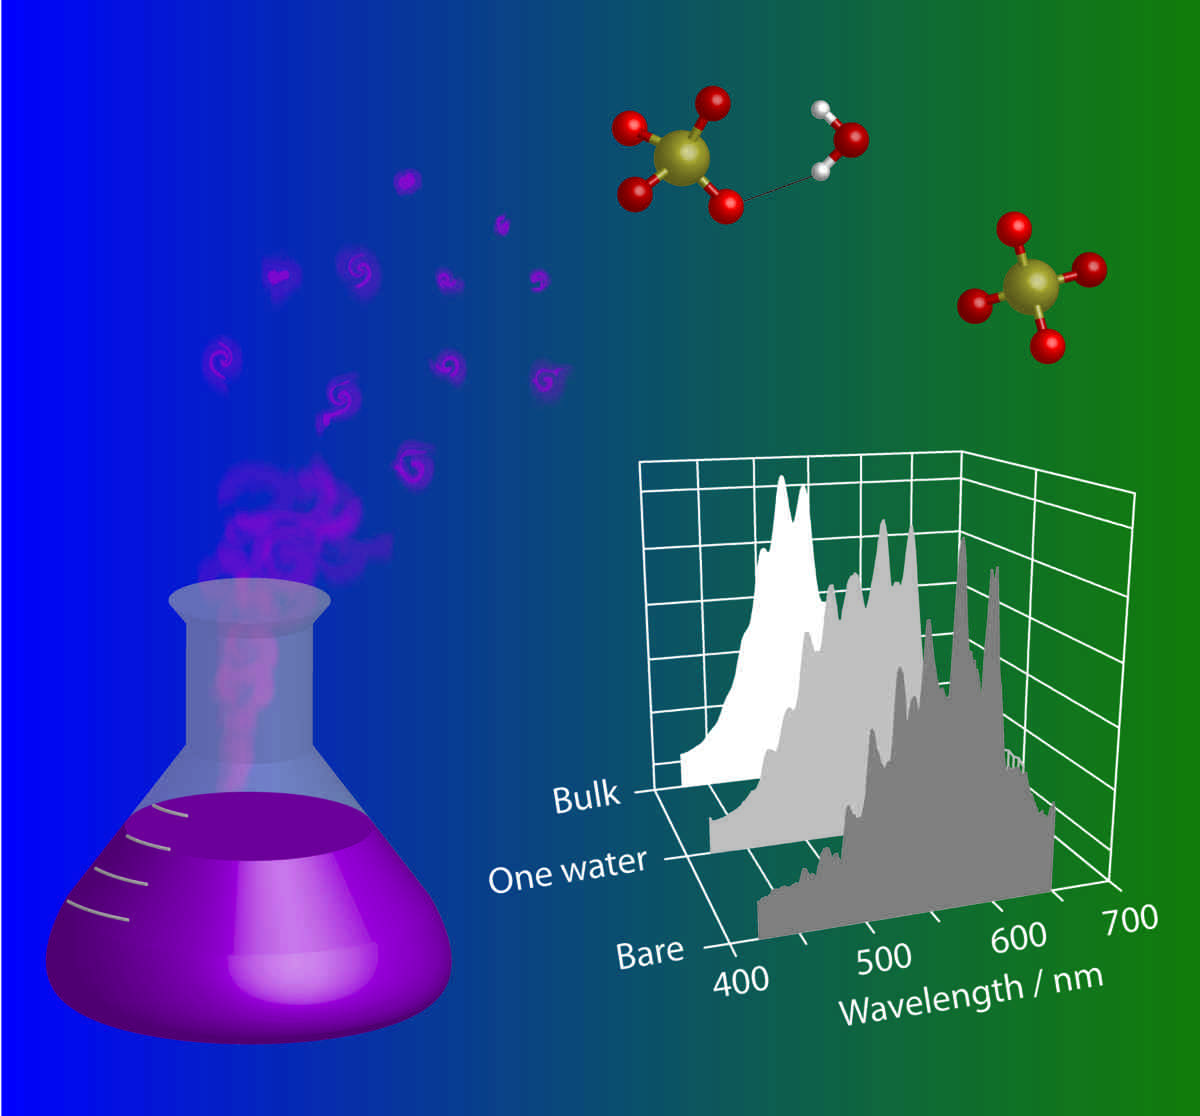 investigation into transition metals as catalysts essay The effects of the transition metals on the structure and activity of the catalysts were investigated ftir spectra showed that the transition metal-doped catalysts maintained the keggin structure of the undoped catalysts.